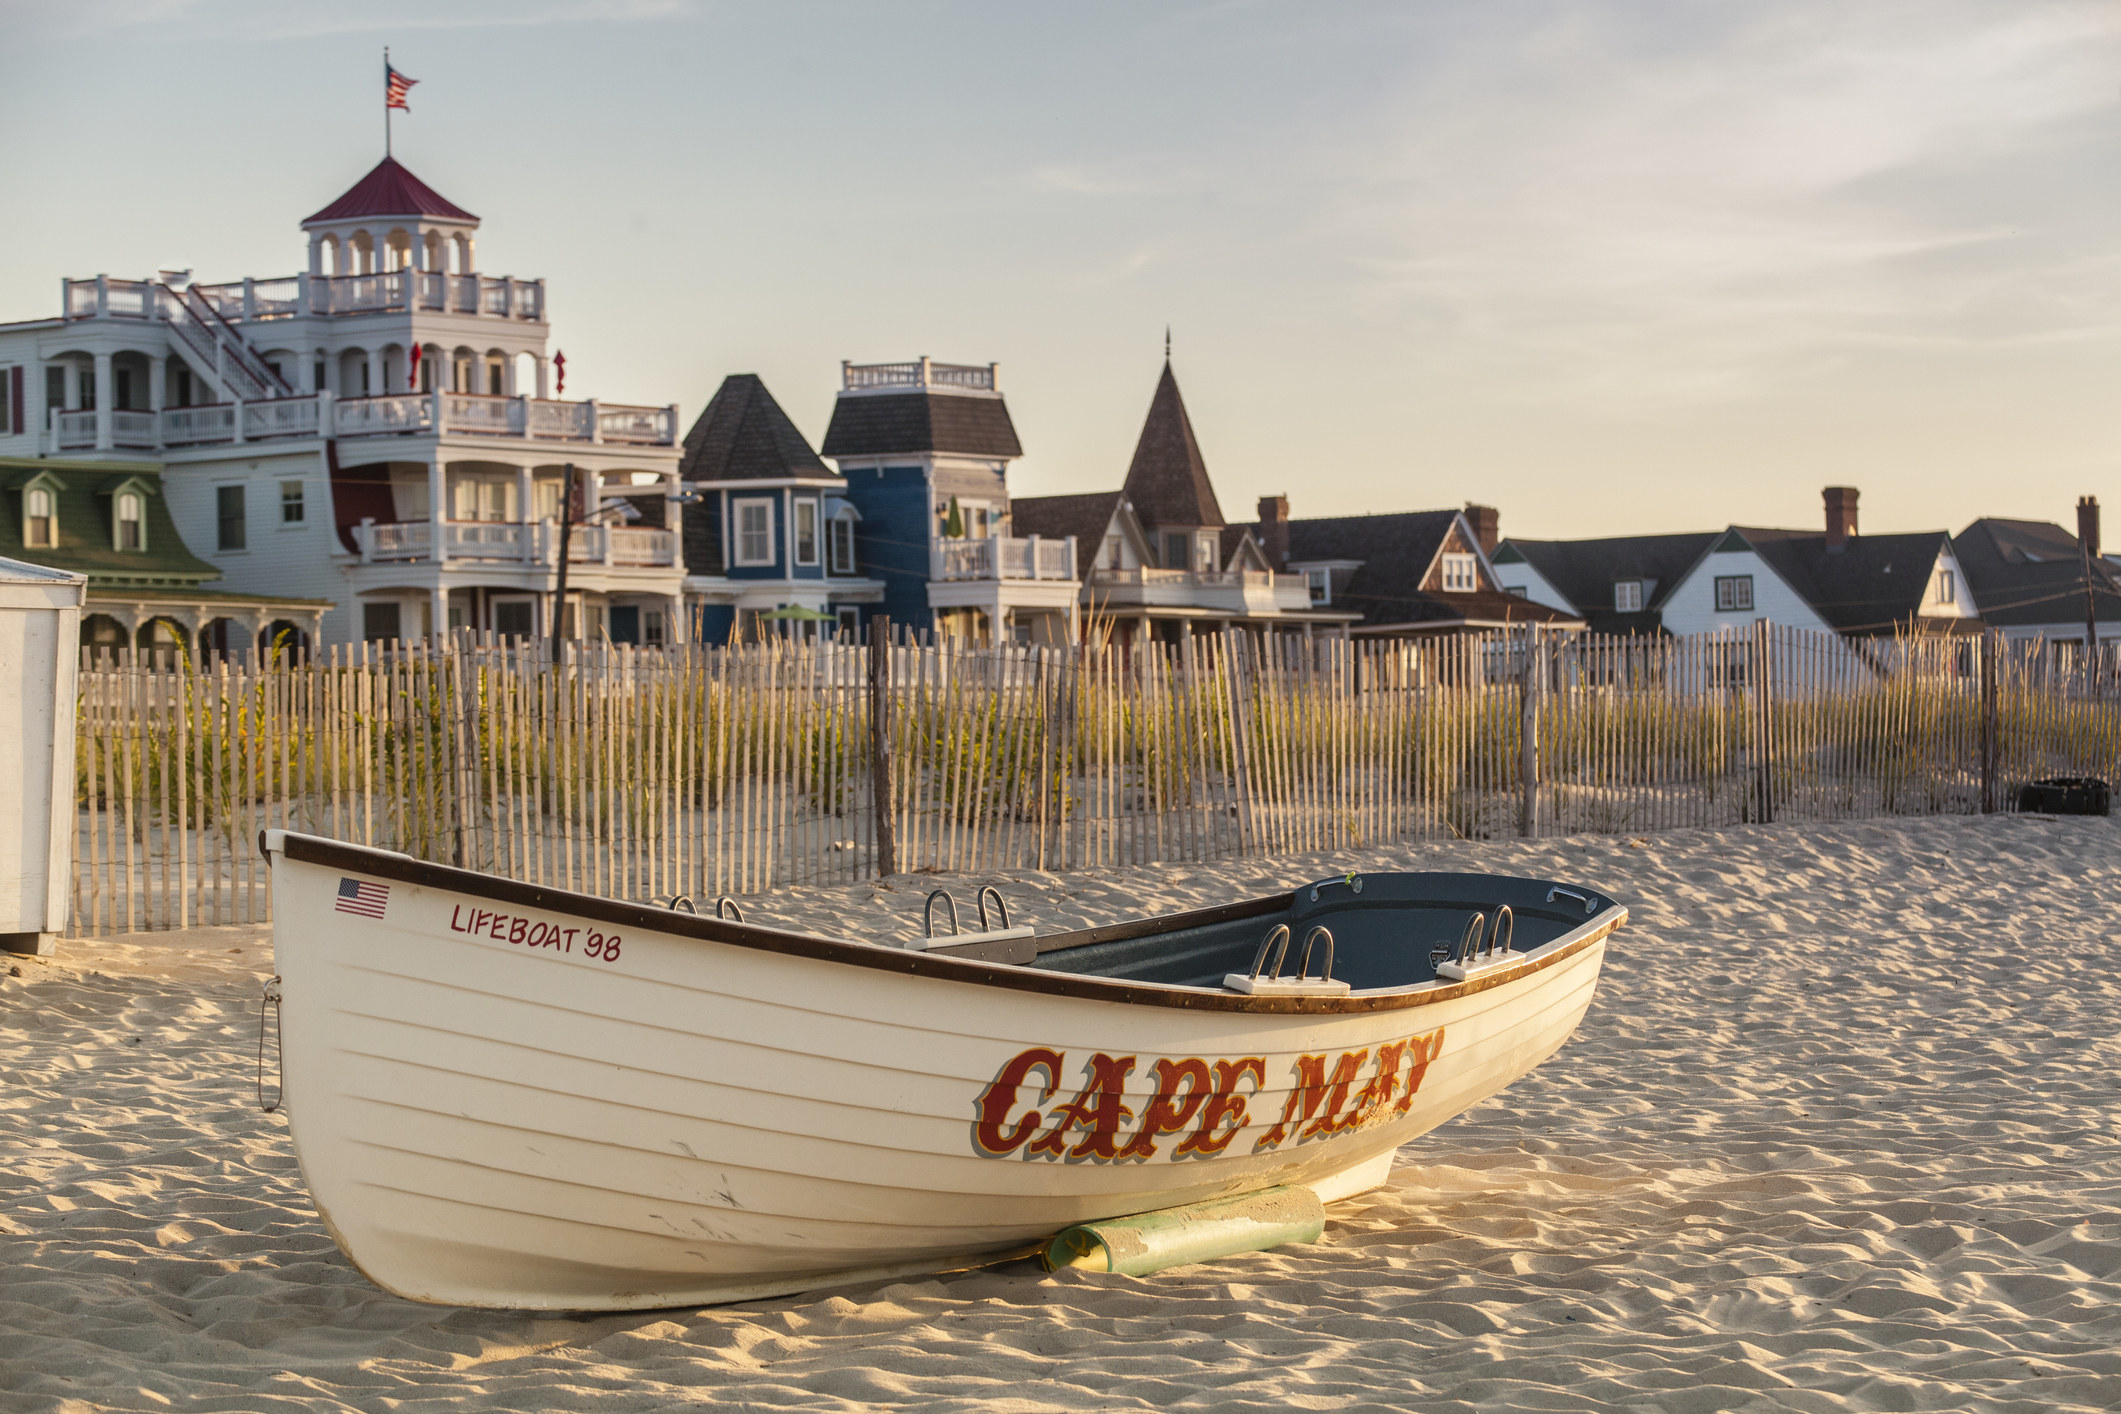 An old lifeboat sits on white sand in front of Victorian homes on Cape May